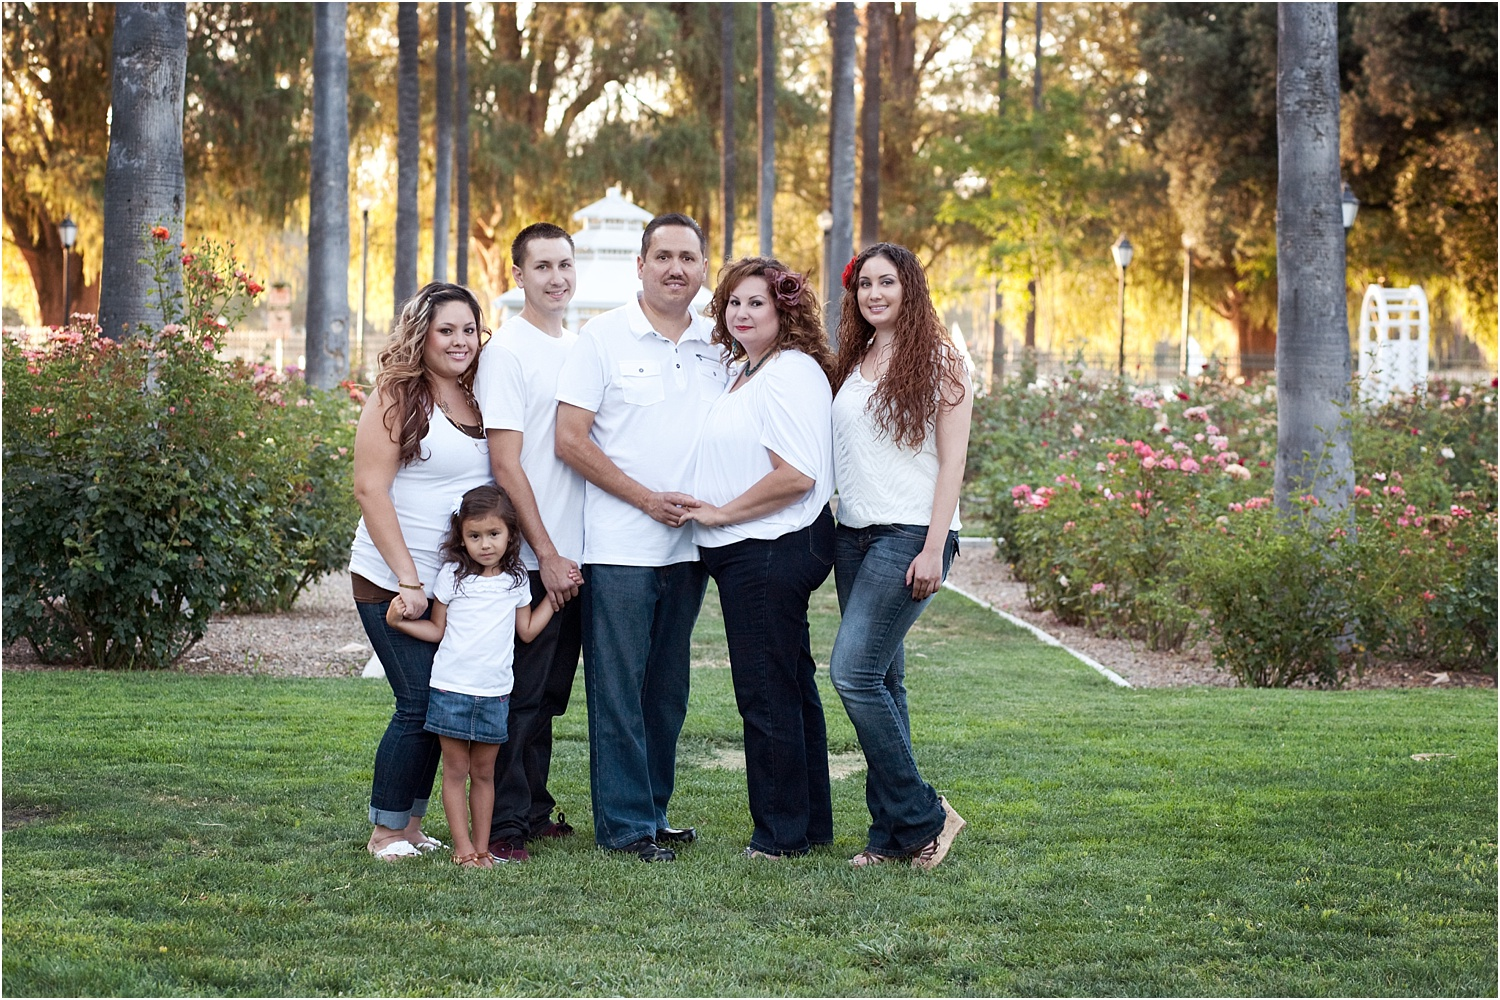 Tips for Posing Large Families and Groups - family in white and jeans